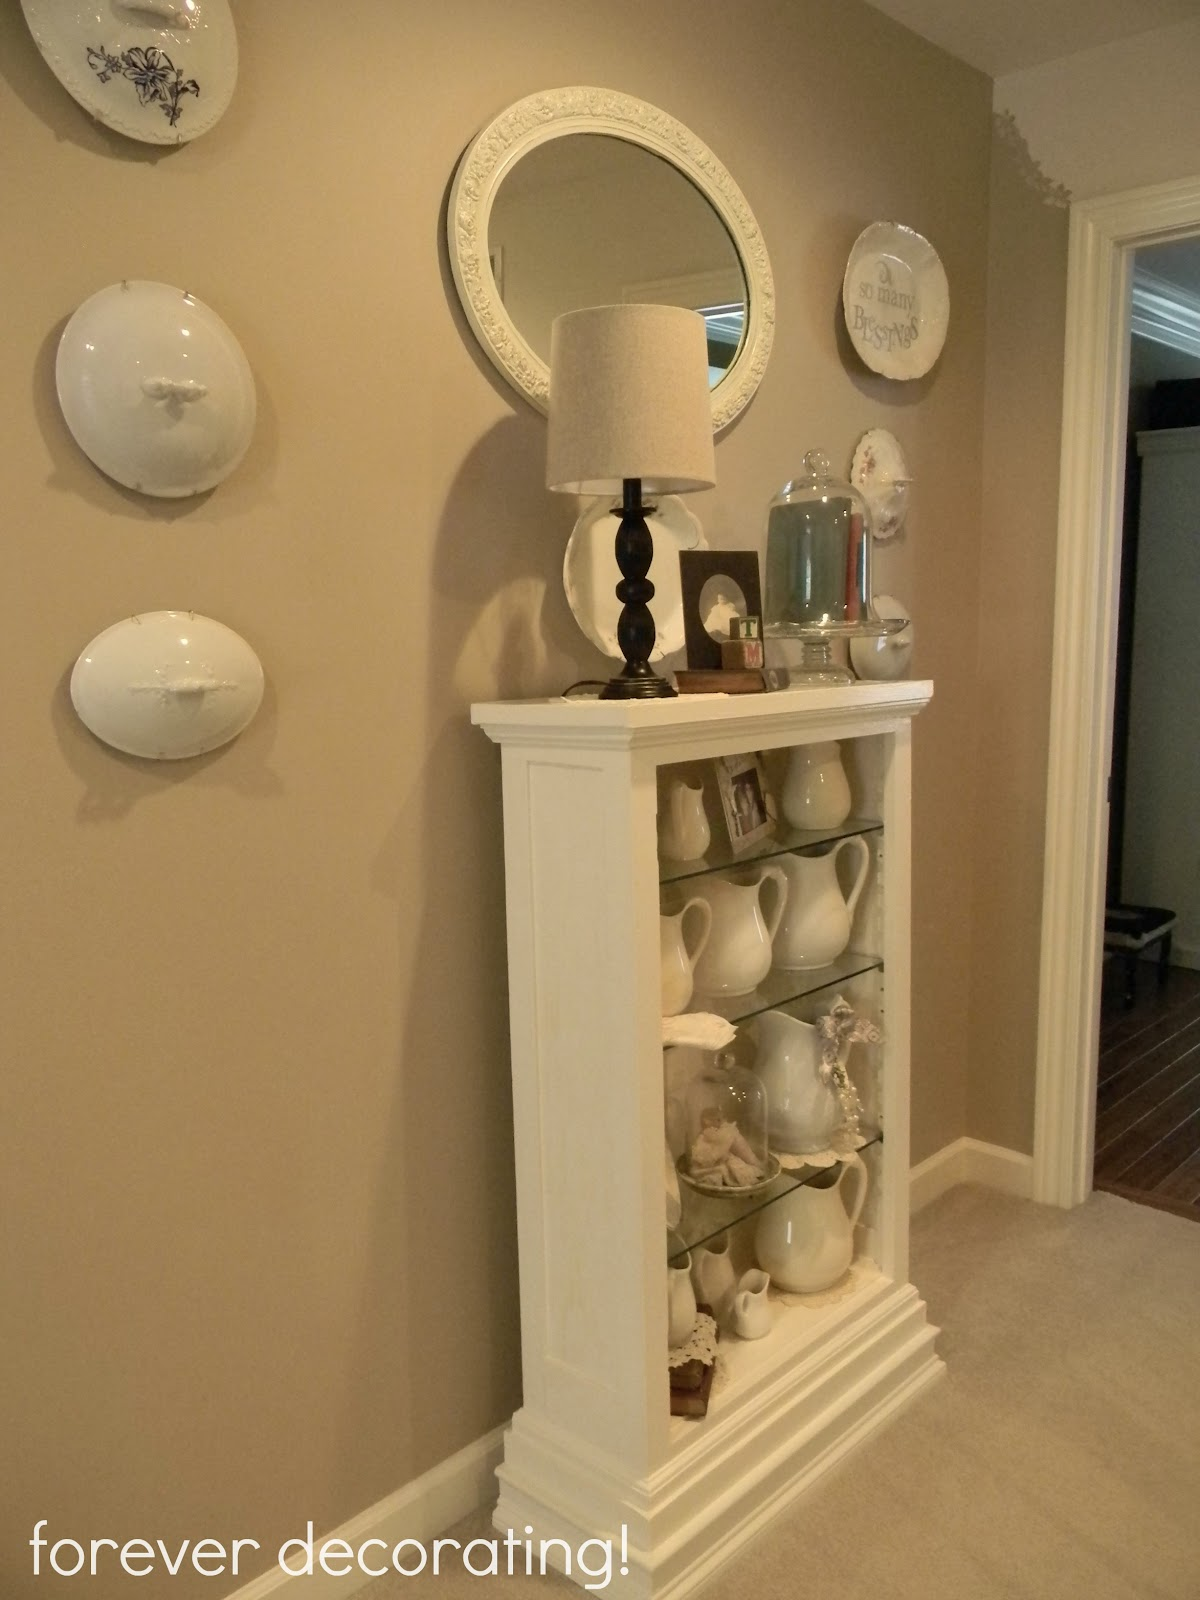 Wall Decor Around Mirror : Forever decorating mirror on the wall